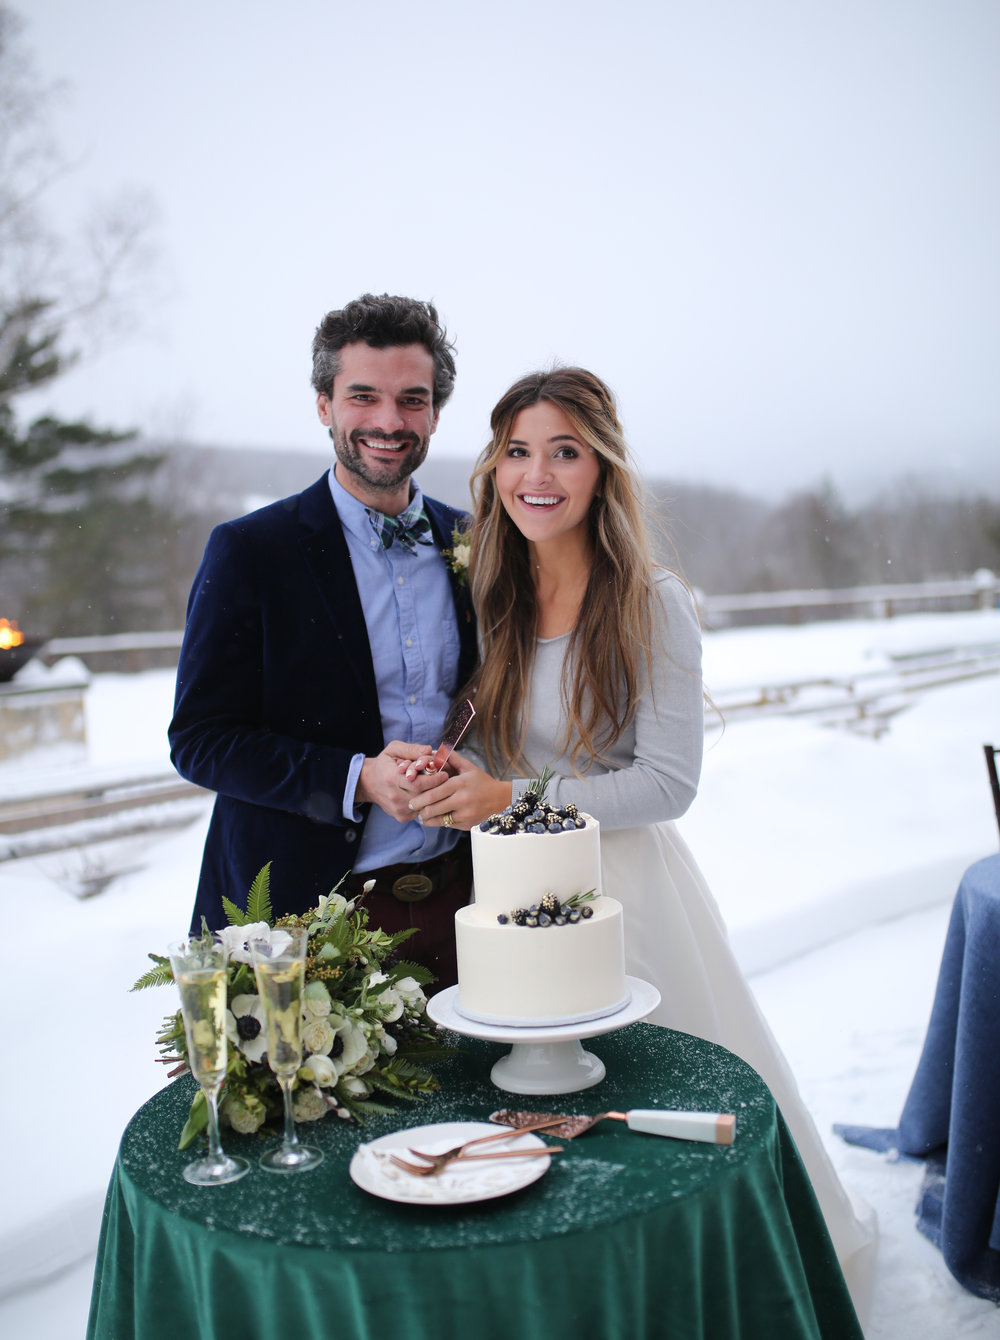 Winter Styled Shoot Stowe Vermont (331 of 341).jpg